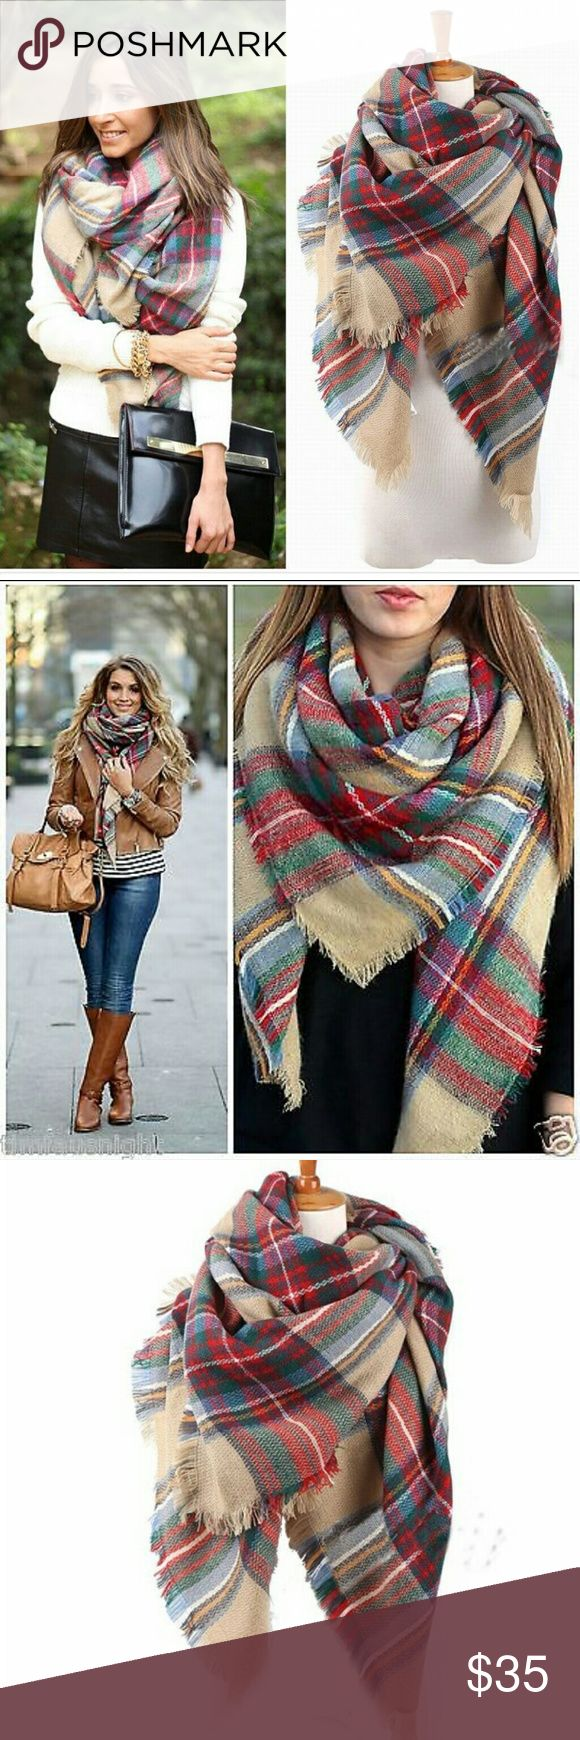 """NWT plaid tartan blanket scarf Gorgeous warm scarf perfect for fall and winter. Measures 55"""" x 55"""". Colors as shown. Ask about bundles! :) Boutique  Accessories Scarves & Wraps"""